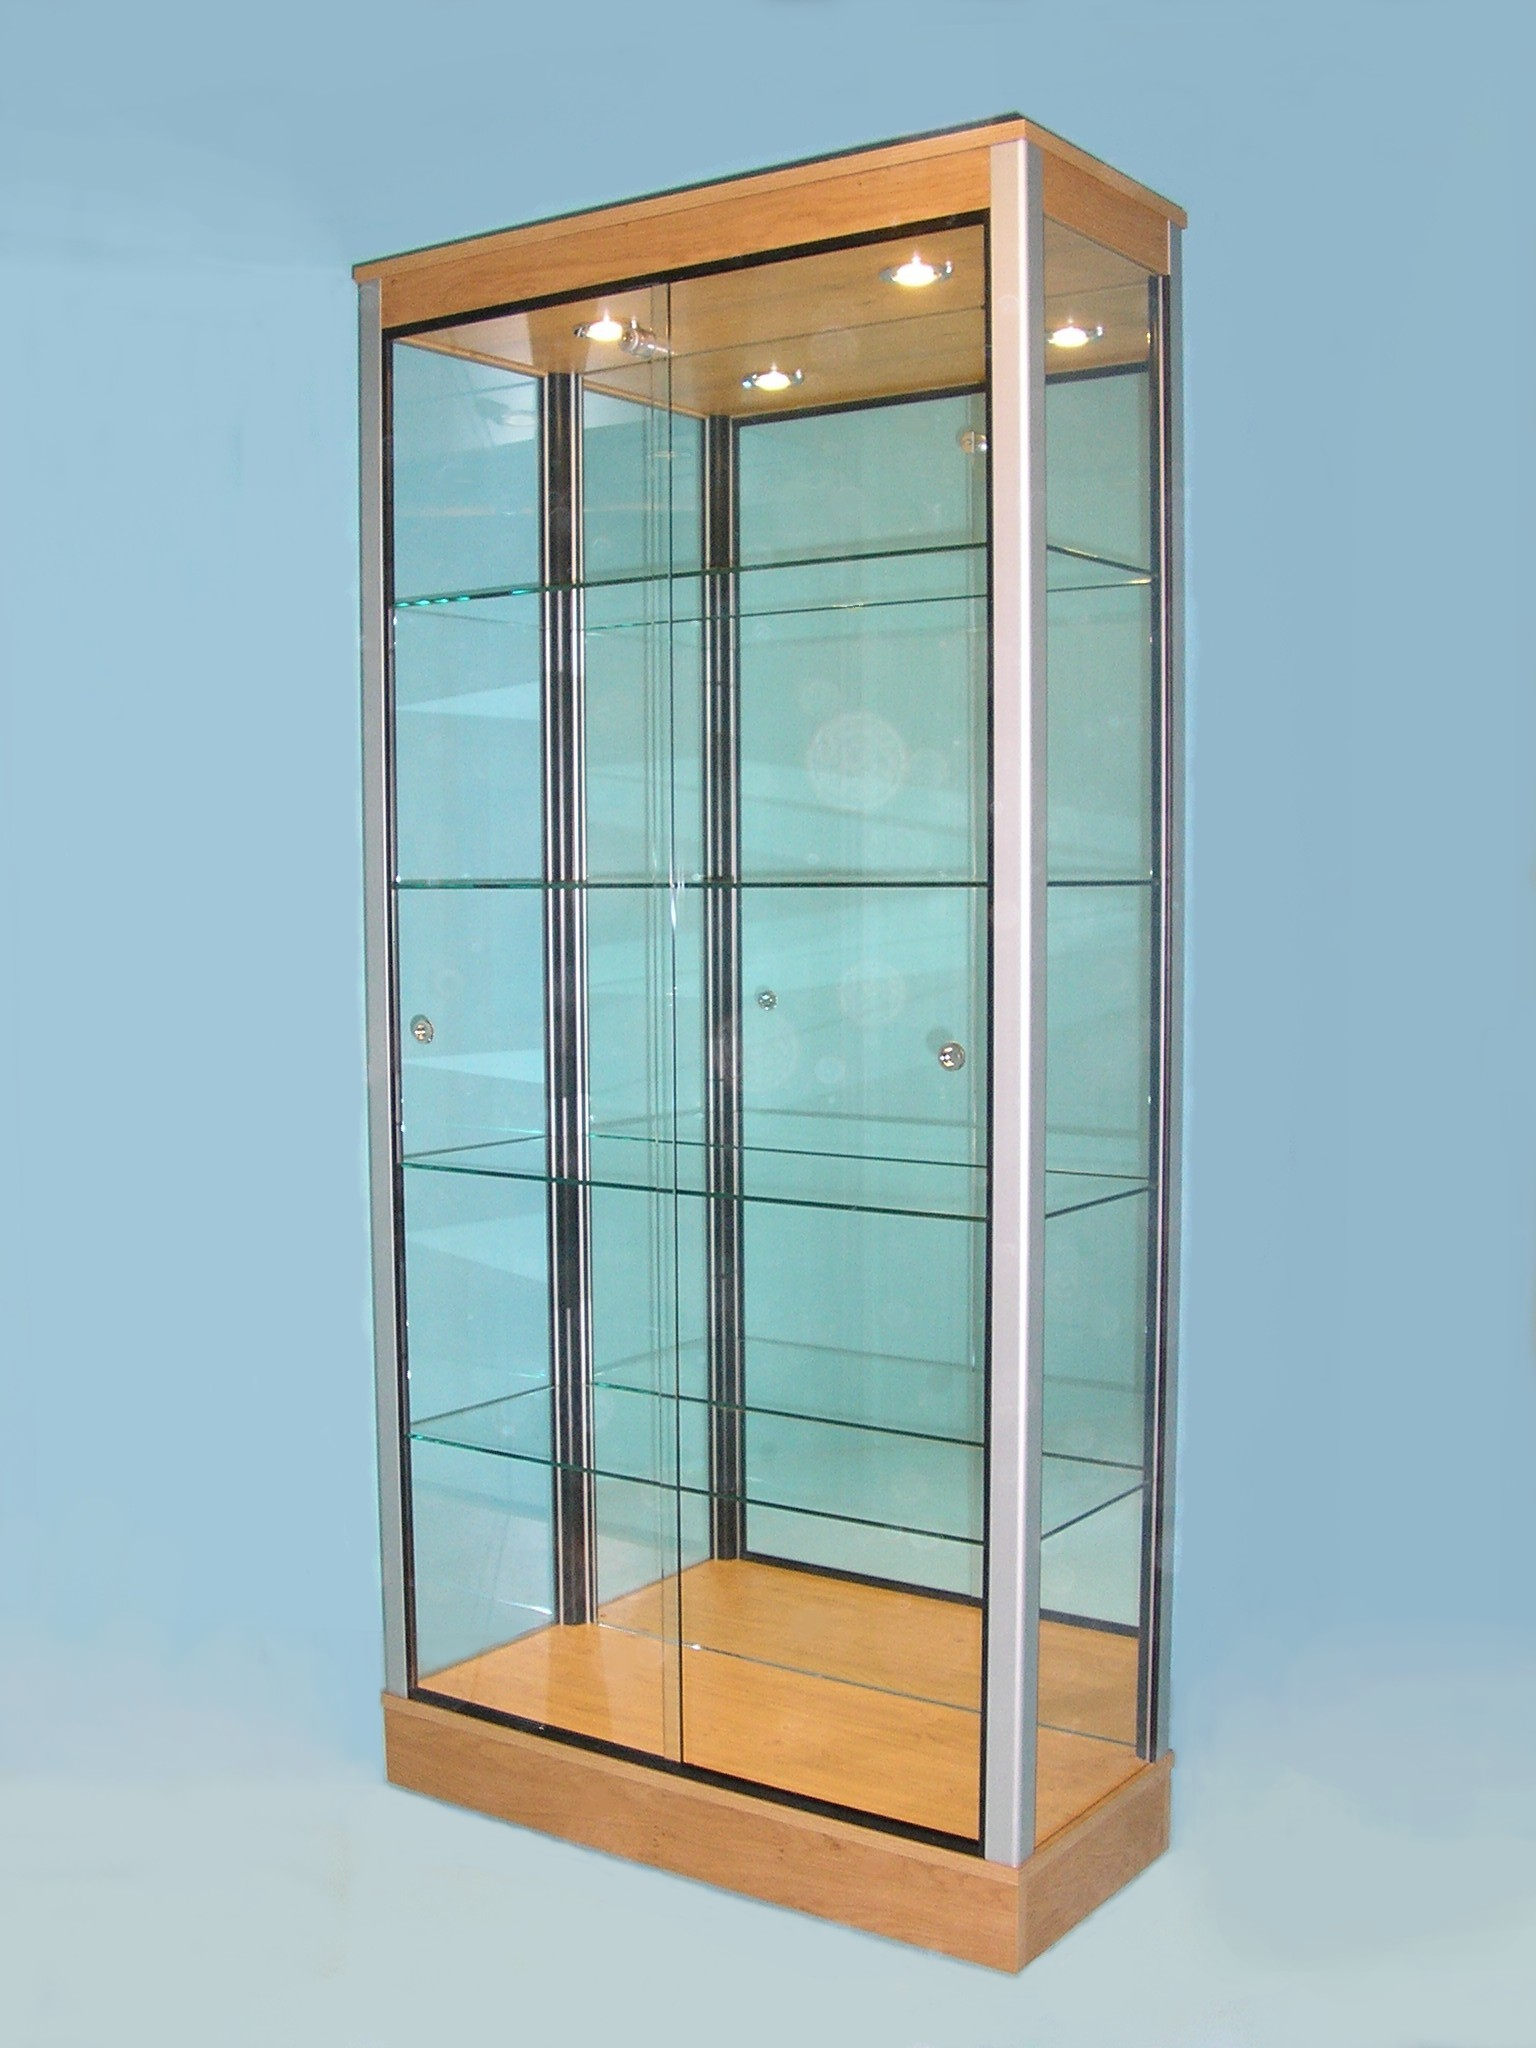 Second Glass Display Cabinets Second Glass Display Cabinets Manicinthecity